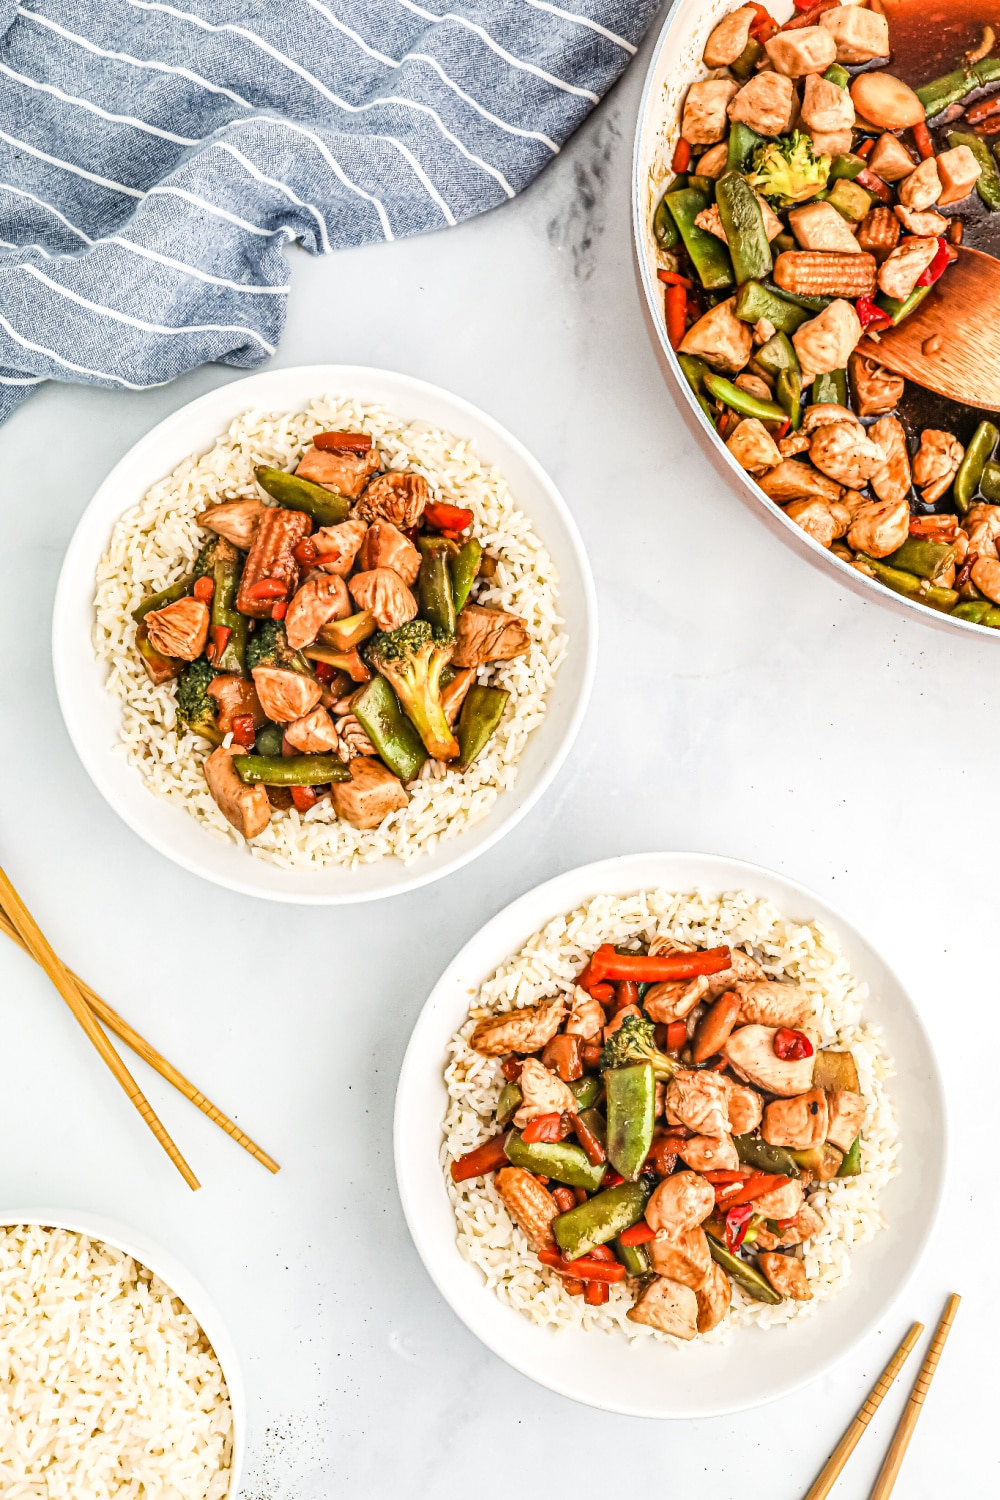 two white bowls of teriyaki chicken stir fry over rice next to a skillet of stir-fry.